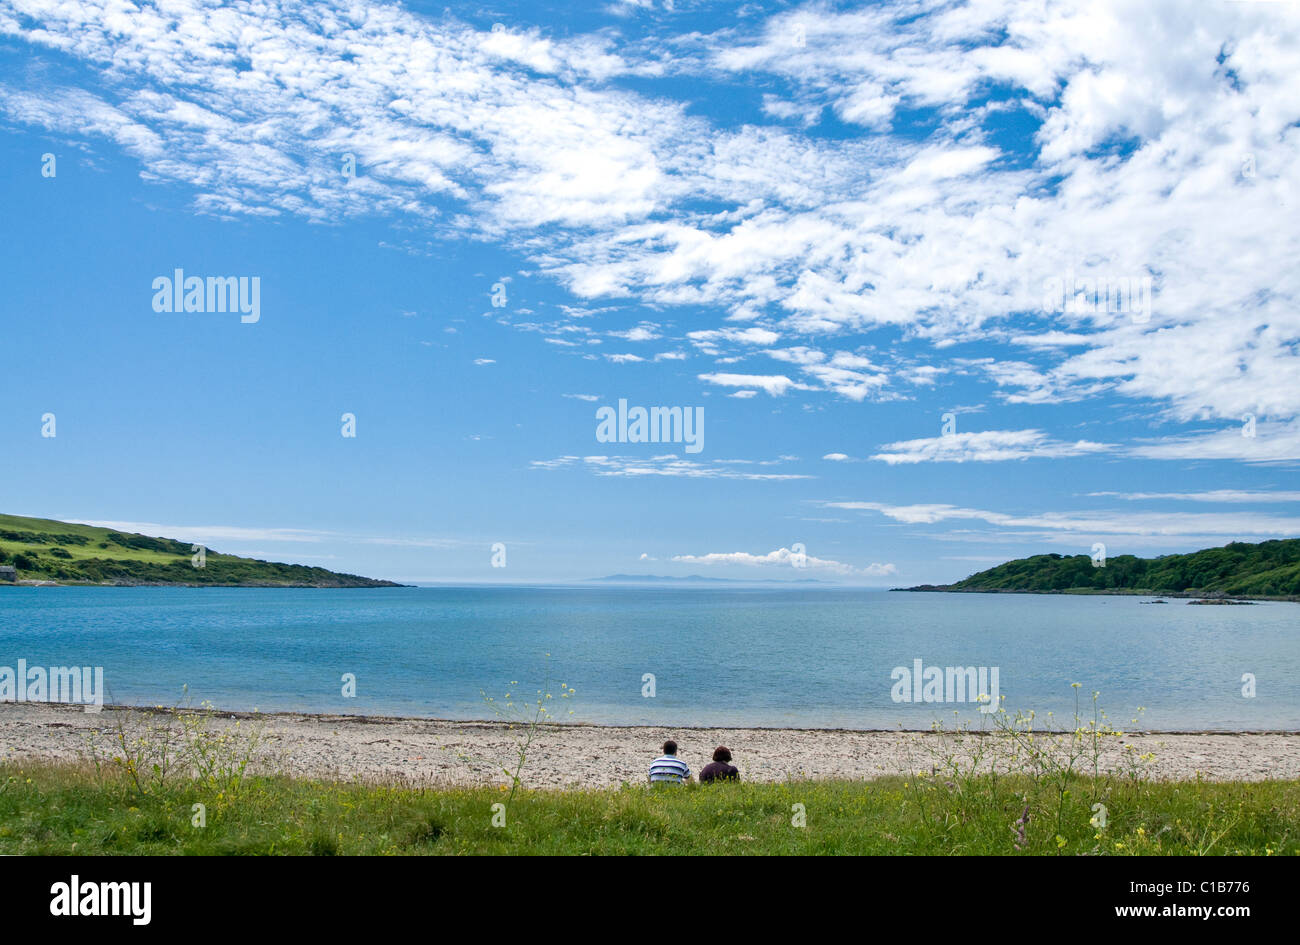 Middle aged couple meditate upon a deserted beach with big blue sky, Brighouse Bay, Galloway - Stock Image